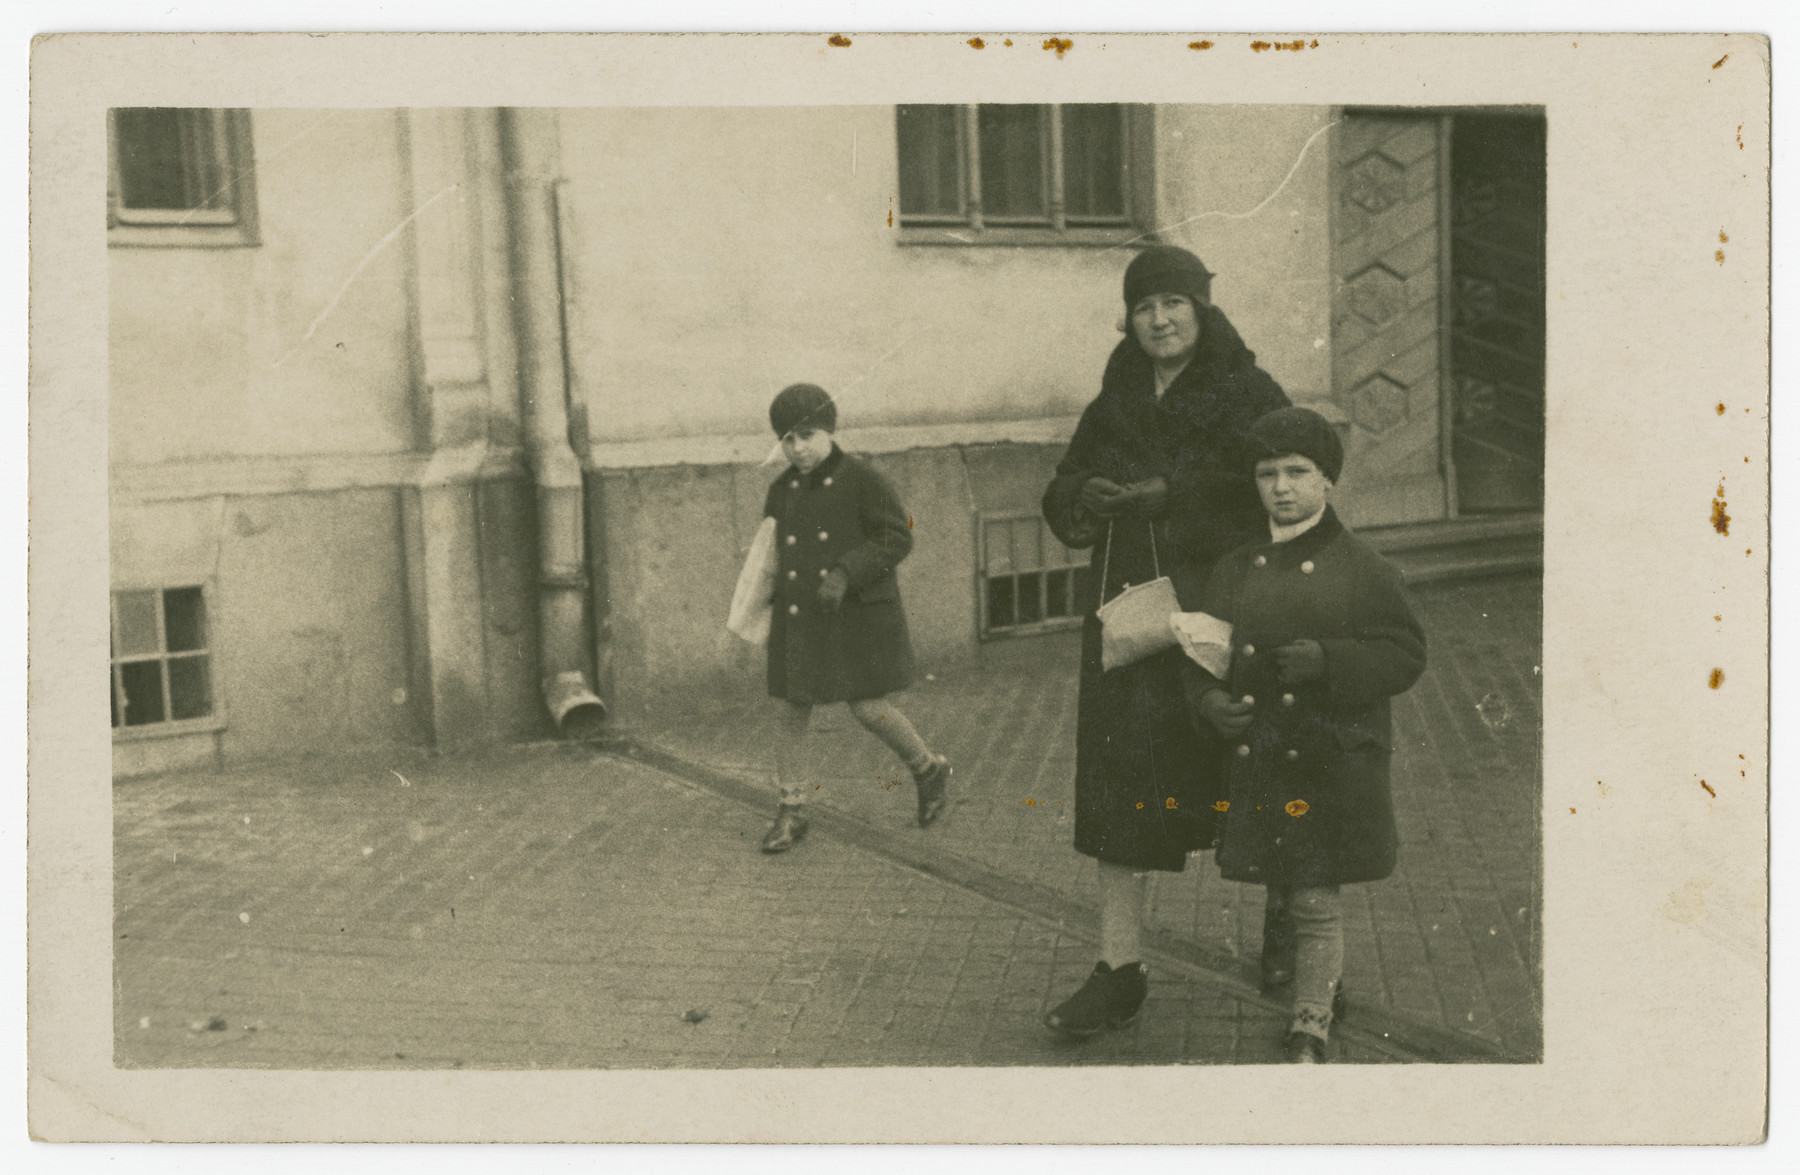 Therese Morawetz walks down a street with her two sons, Walter and Hans.